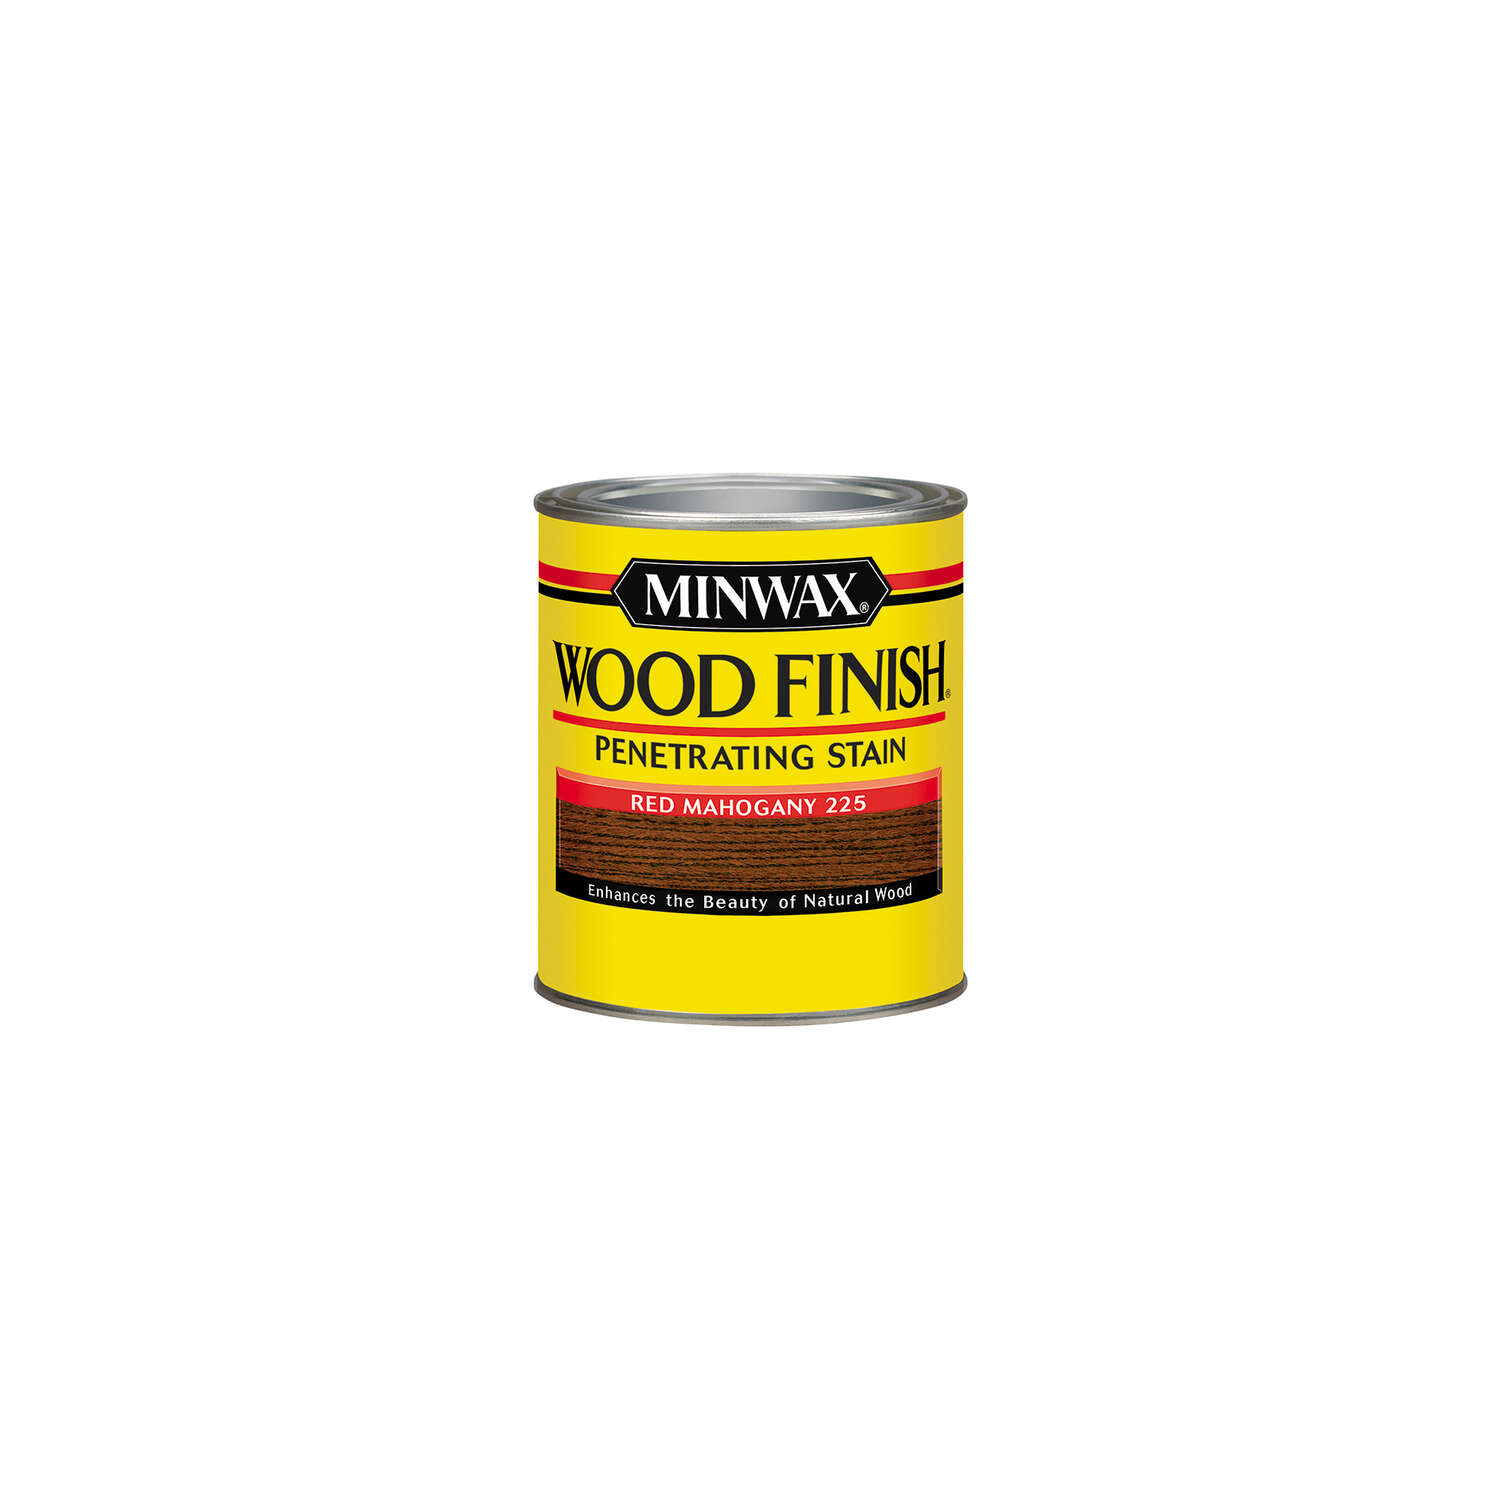 Minwax Wood Finish Semi-Transparent Red Mahogany Oil-Based Wood Stain 0.5 pt.